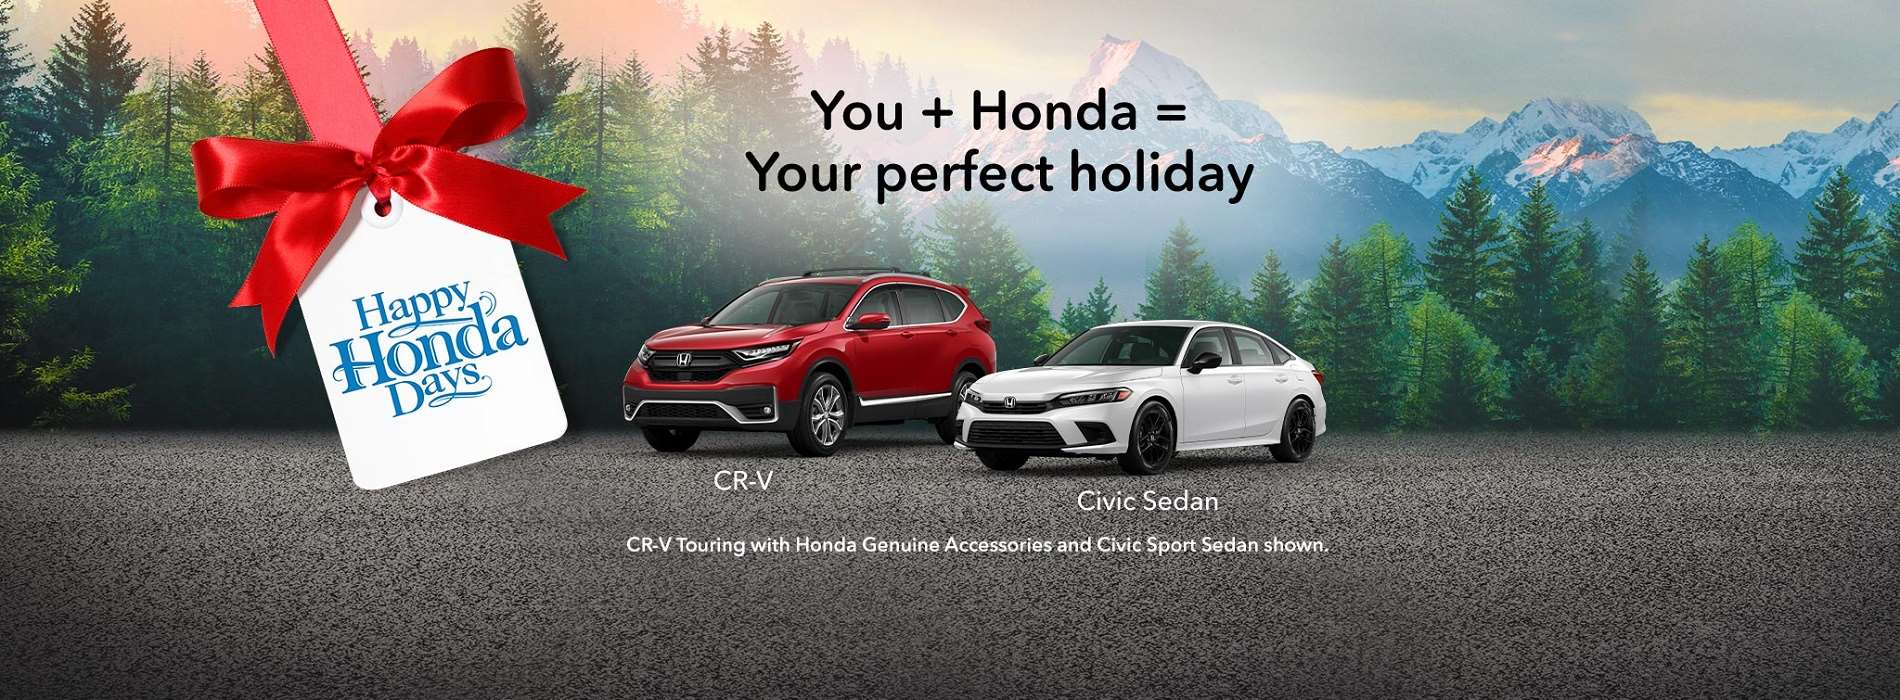 Happy Honda Days Roy Schmidt Honda